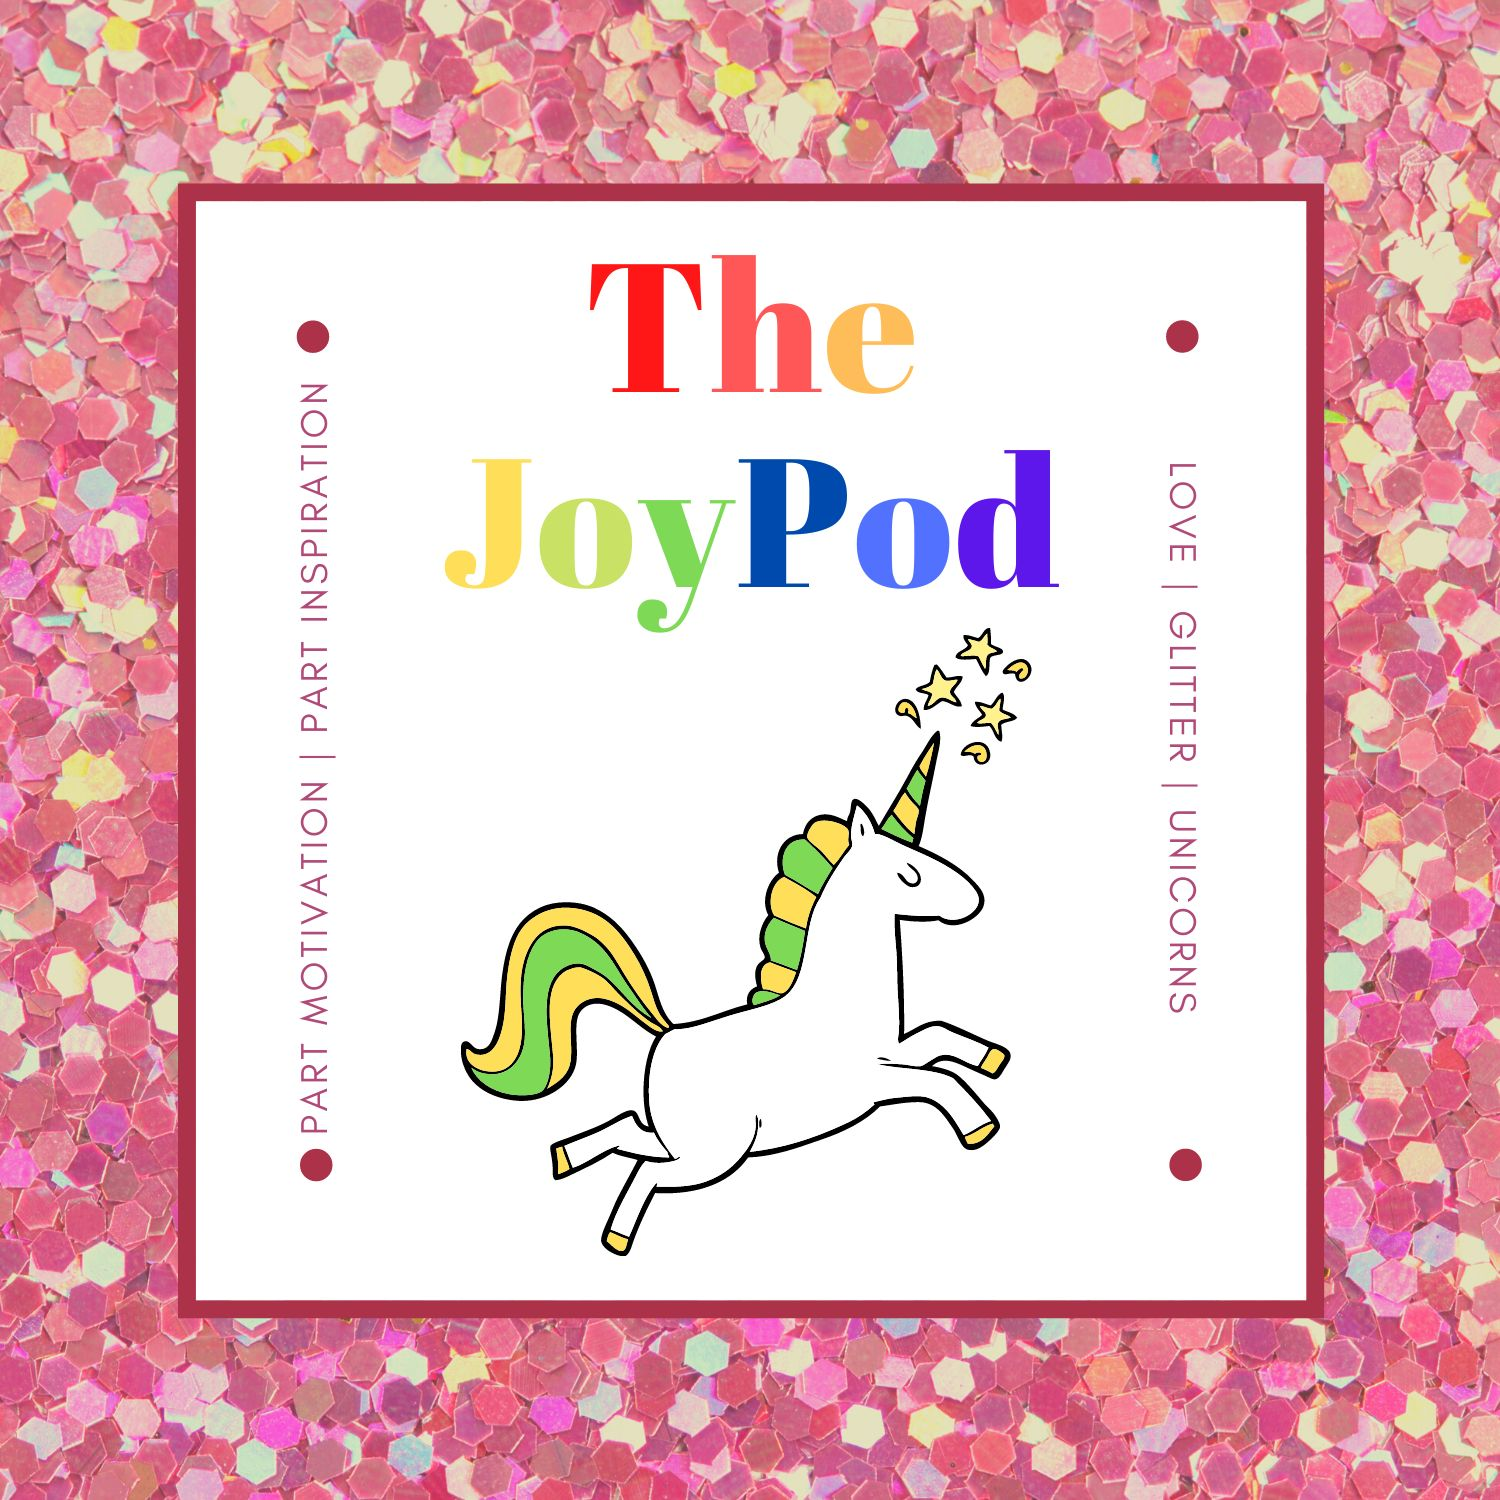 The Joy Pod